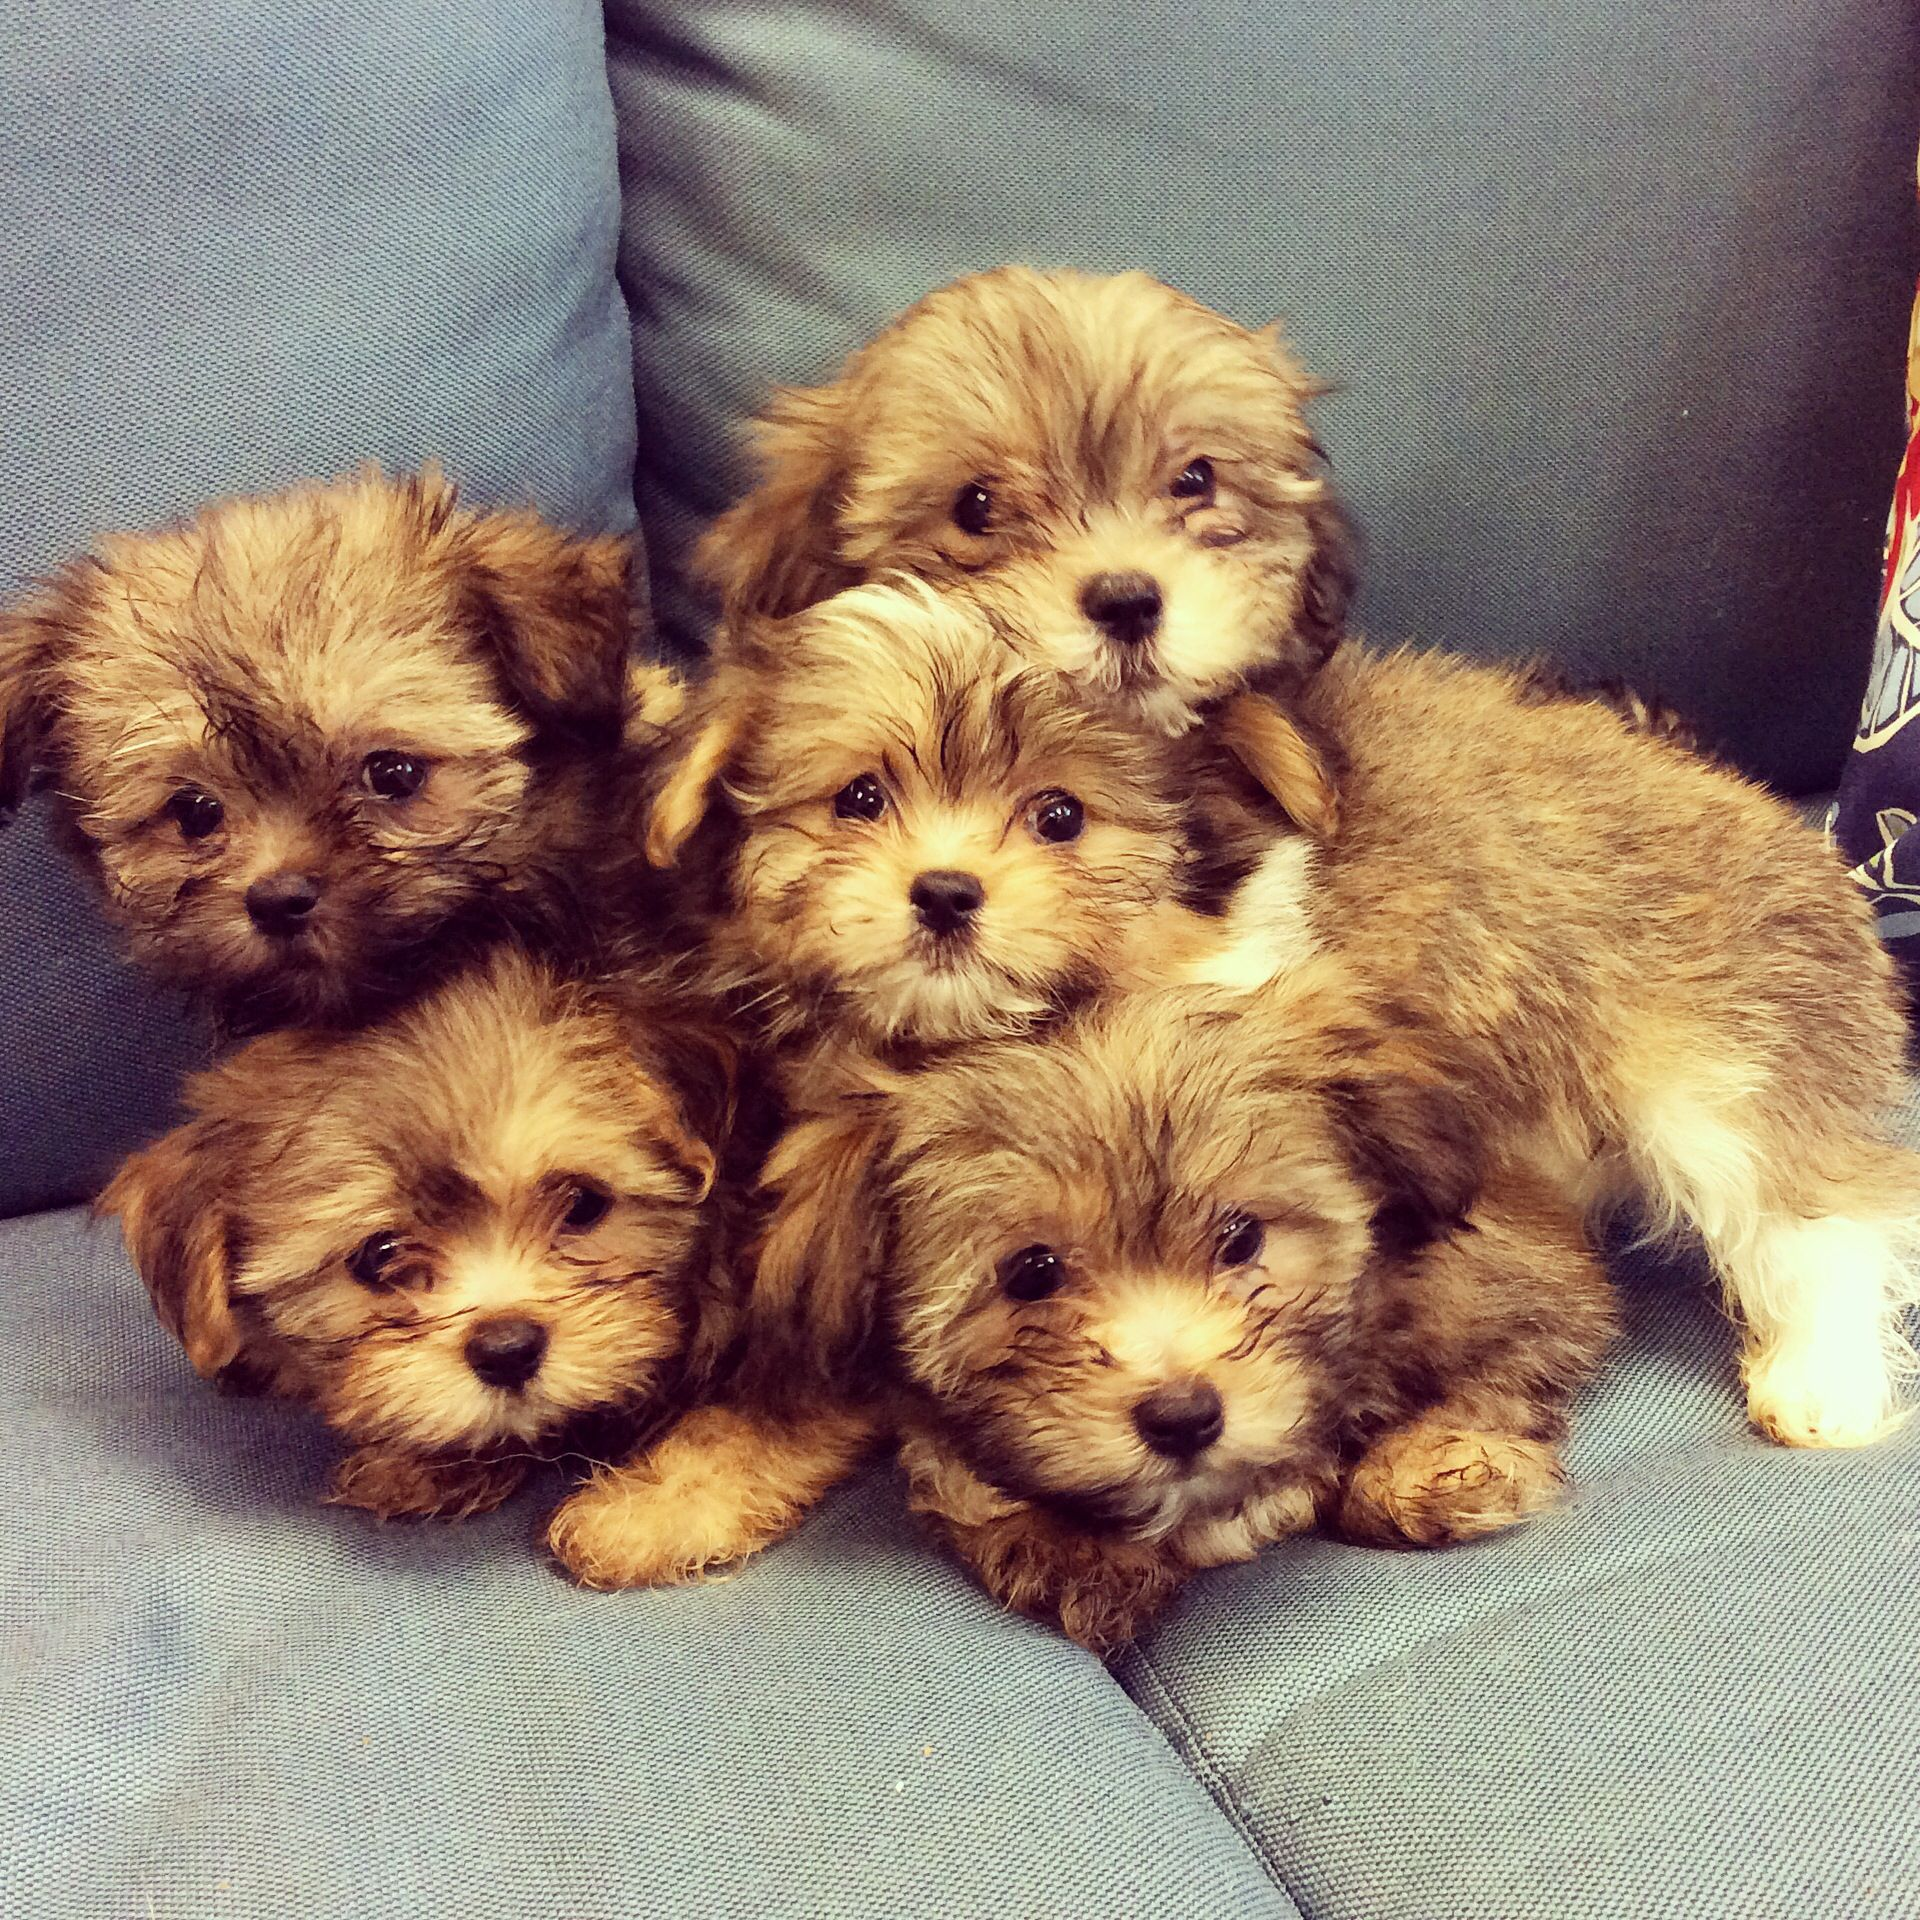 MiKi puppies Cute animals, Puppies, Big dogs